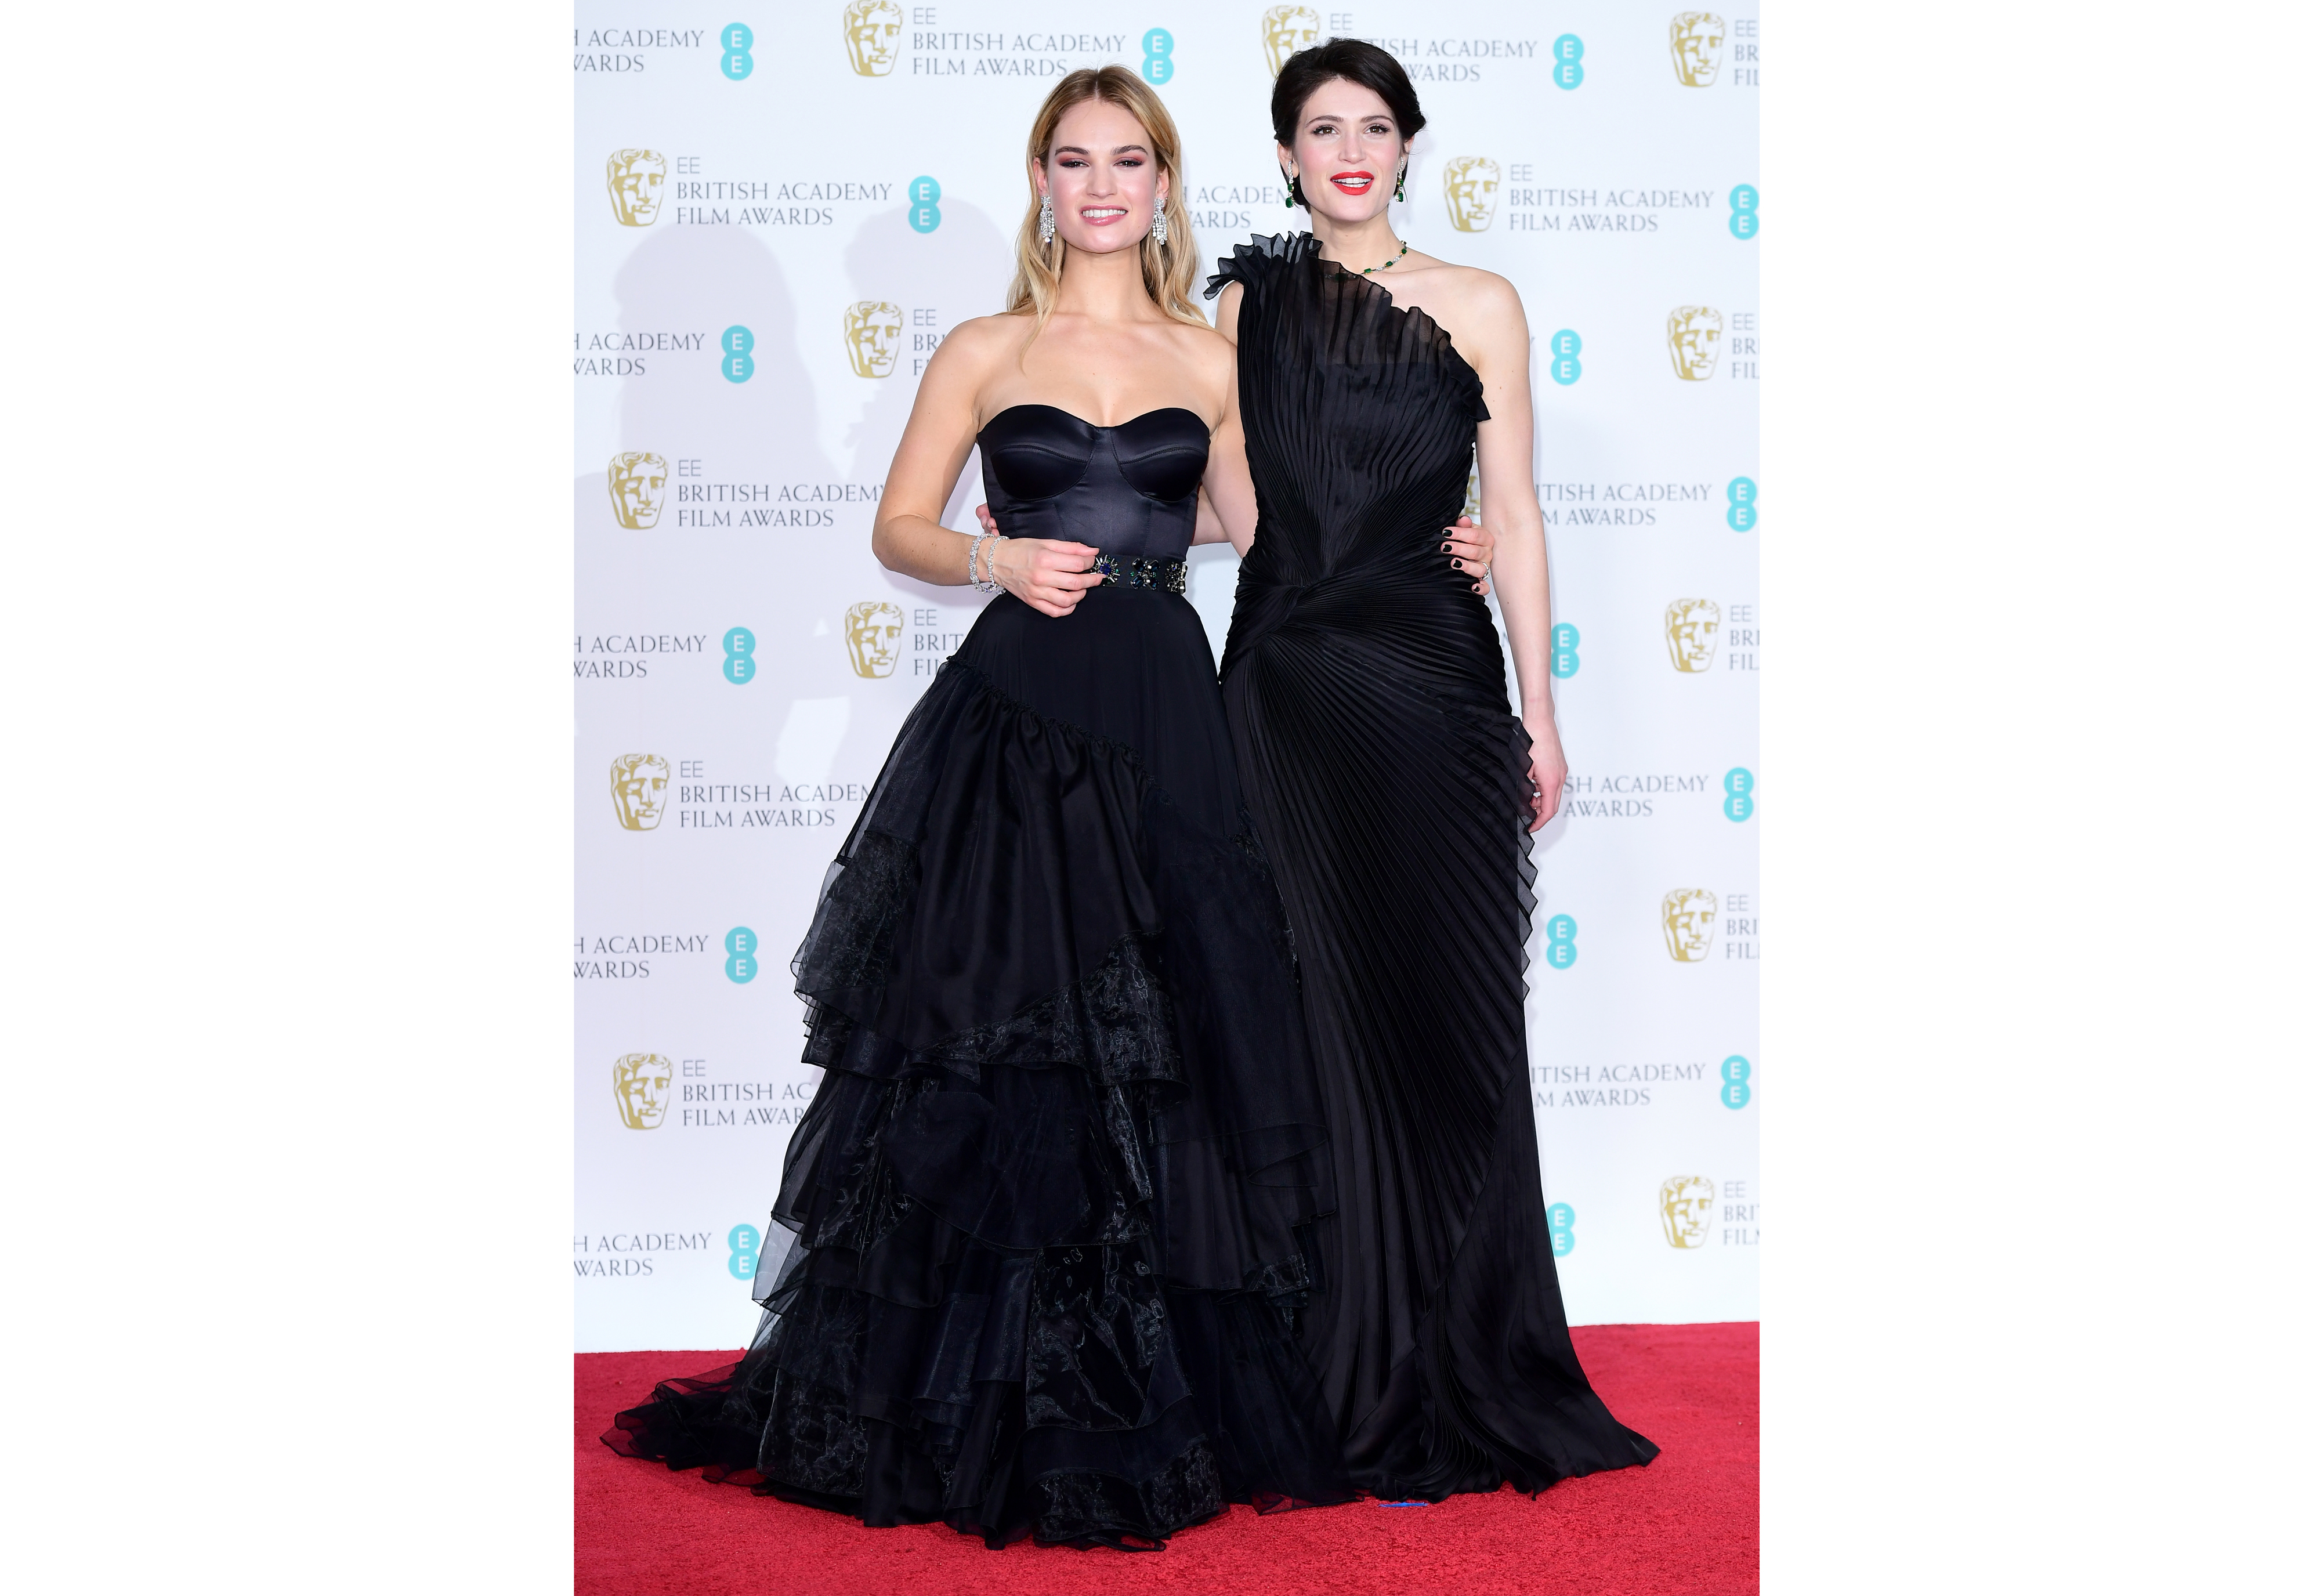 Lily James (left) and Gemma Arterton in the press room at the Baftas 2017